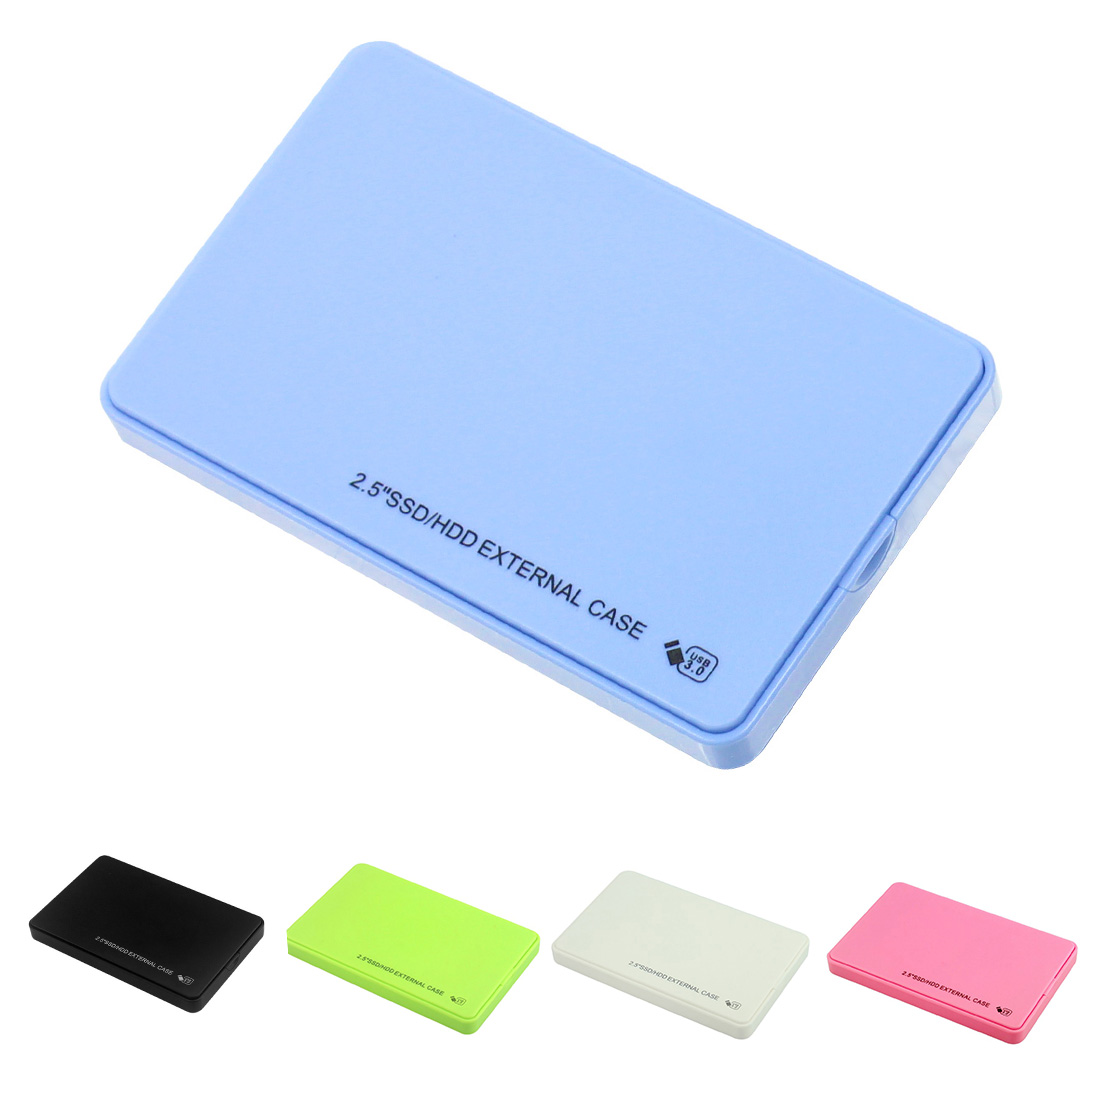 Case Backup-Tool Hard-Drive Sata-Hdd-Enclosure External-Adapter Laptop Mobile SSD 5gbps title=